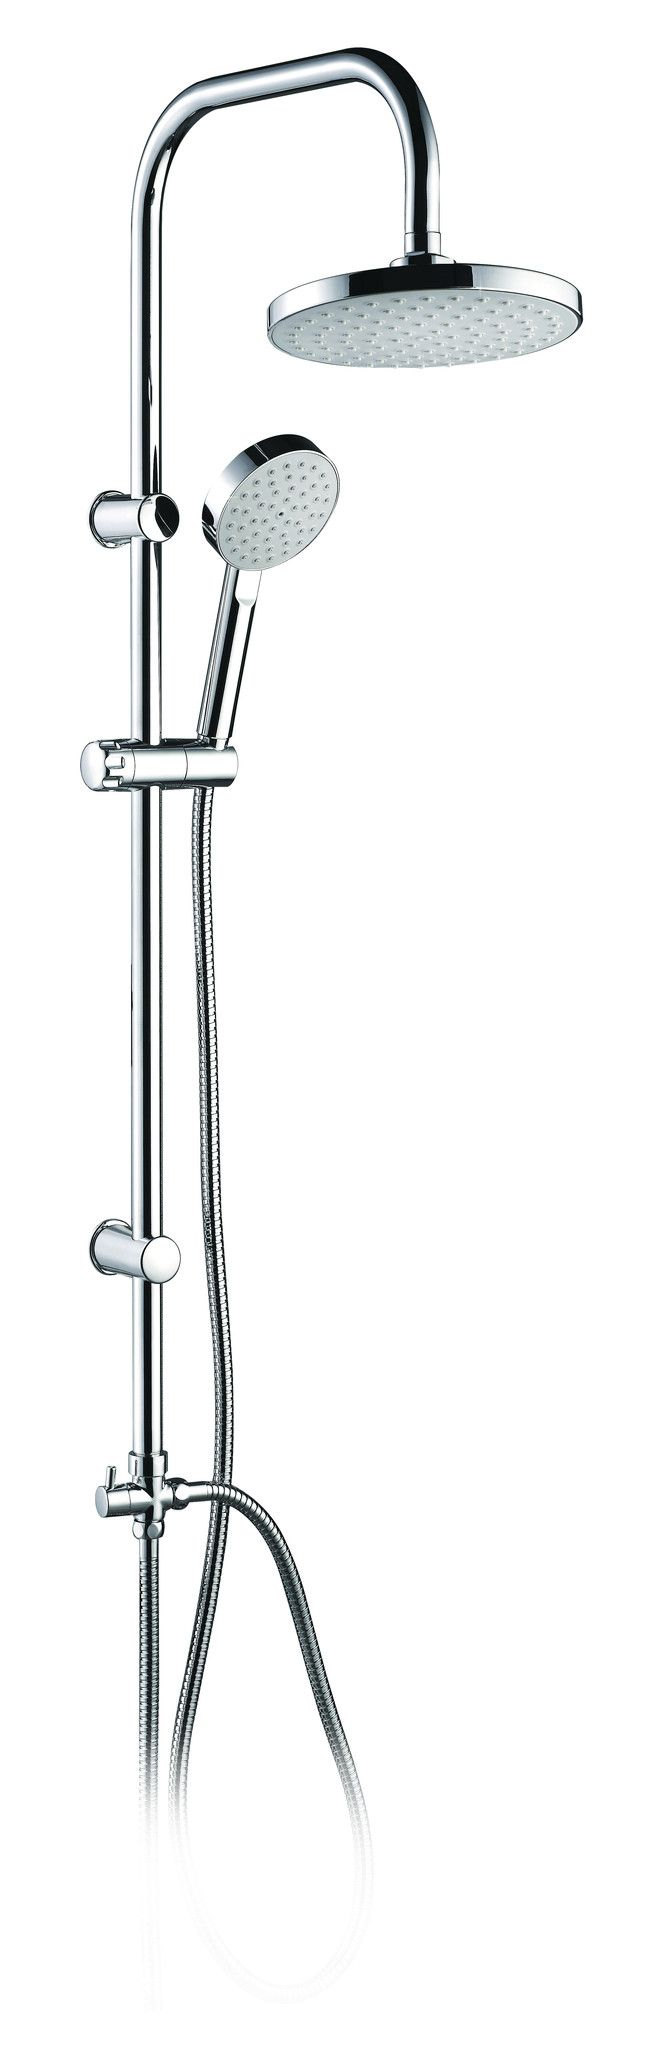 Shower Colum Lago Collection: • Shower tube in Stainless steel • Wall brackets Chromed ABS • Hand shower holder in Chromed ABS • Minimalistic diverter in chromed brass • Over head shower Ø 7.9-inch di